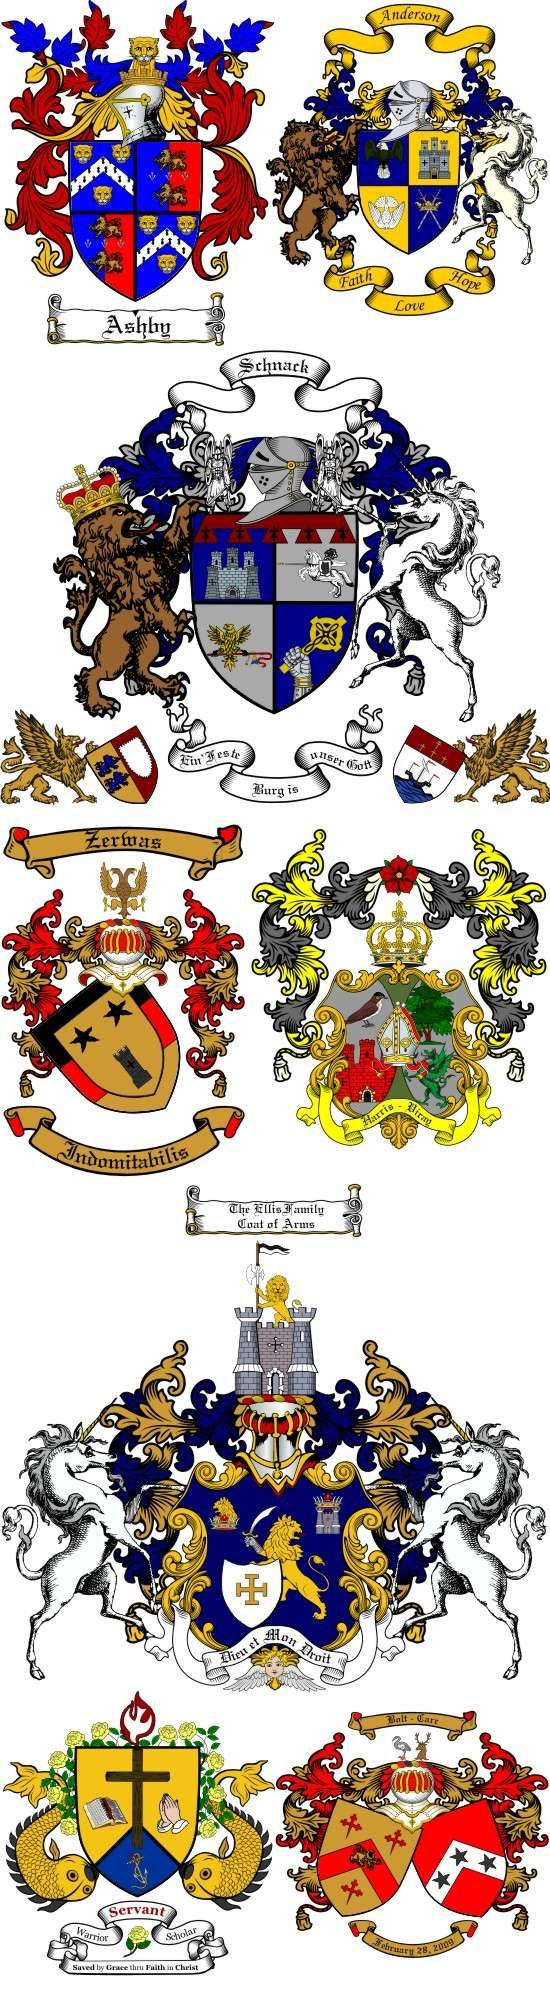 203 best Family crest images on Pinterest | Coat of arms, Family ...